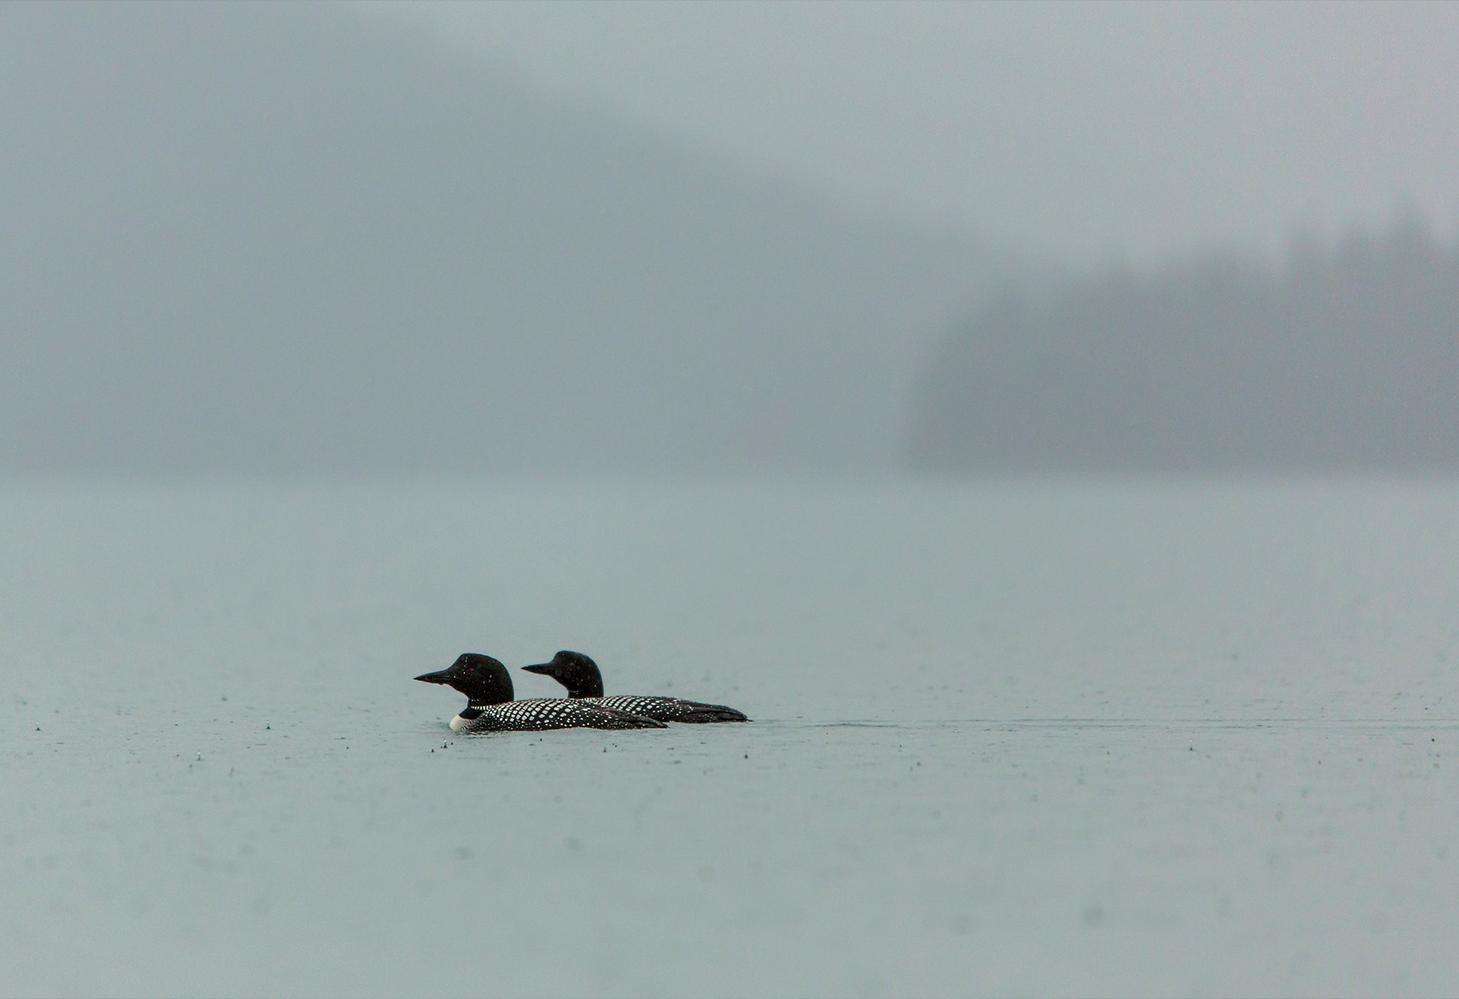 Two Common Loons swim in an alpine lake during a rain shower